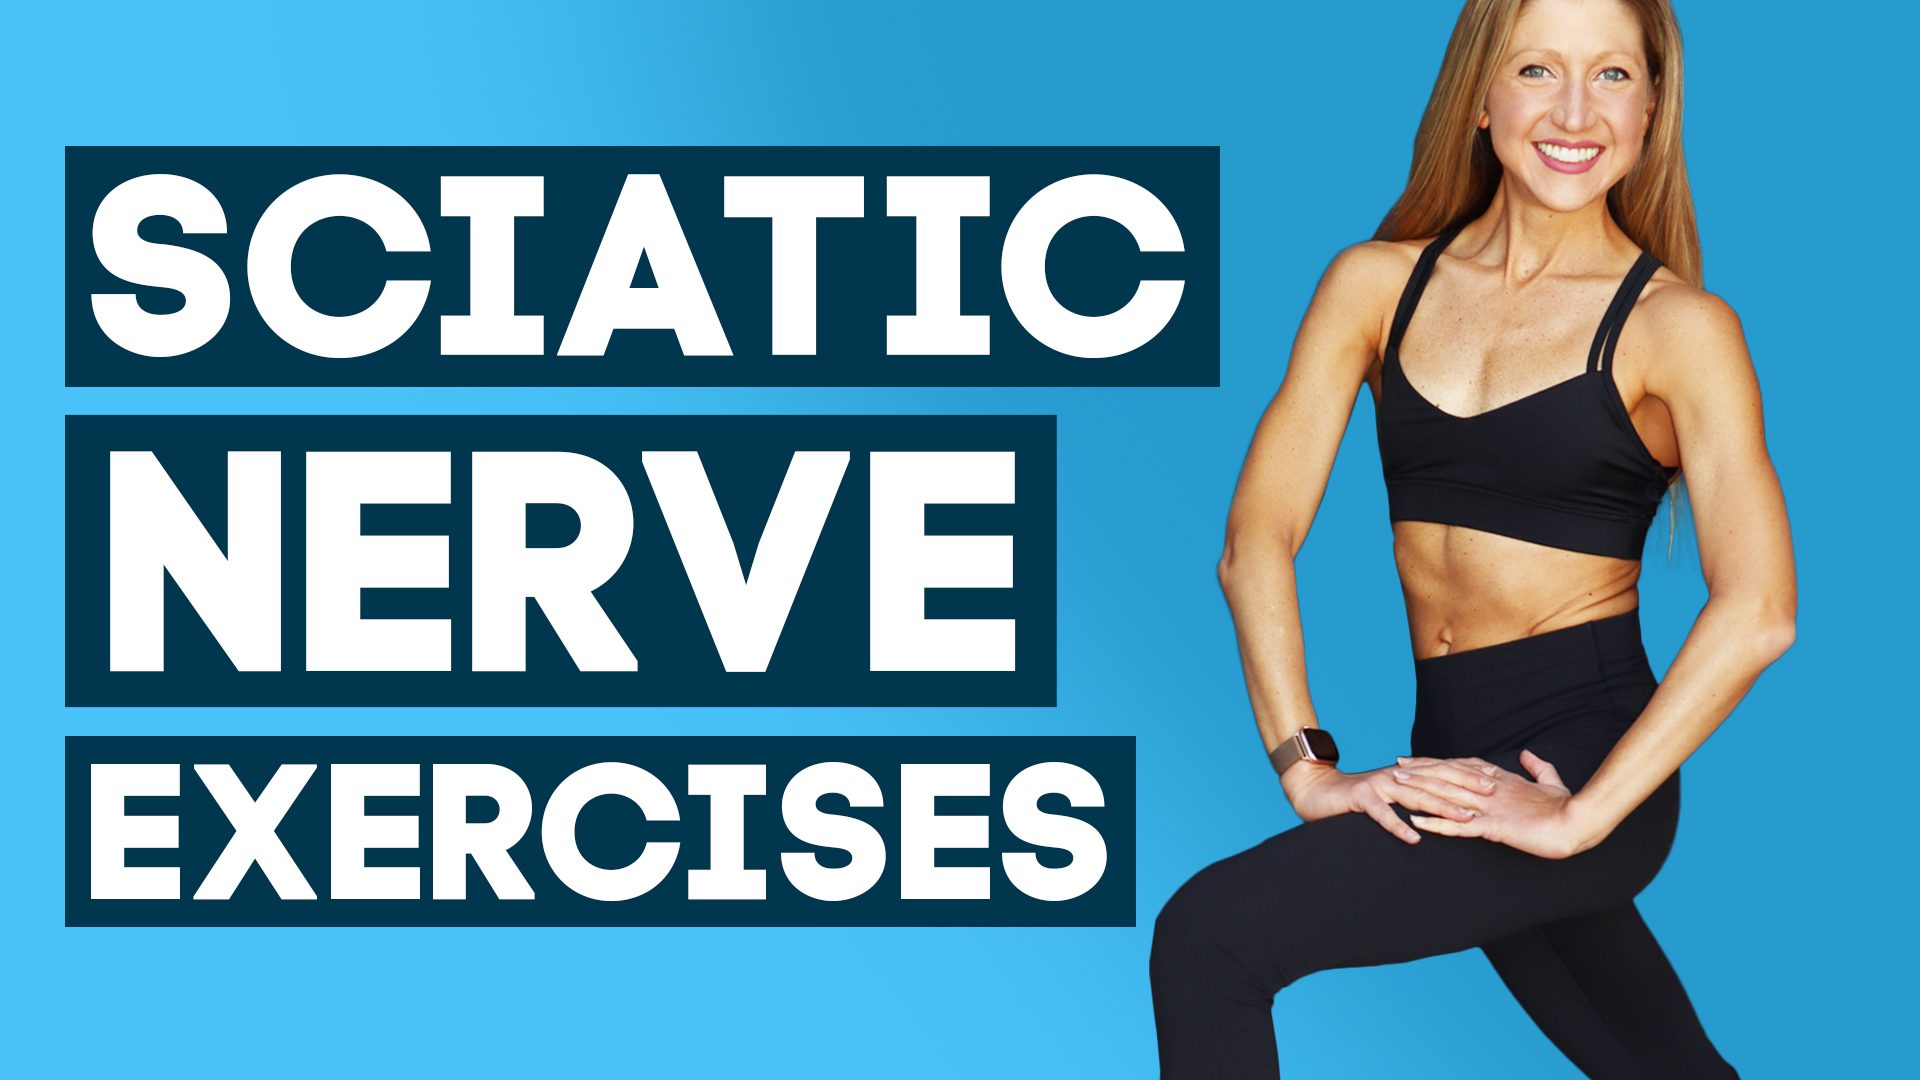 Sciatic Nerve Exercises: Sciatica Exercises for Sciatica Pain Relief